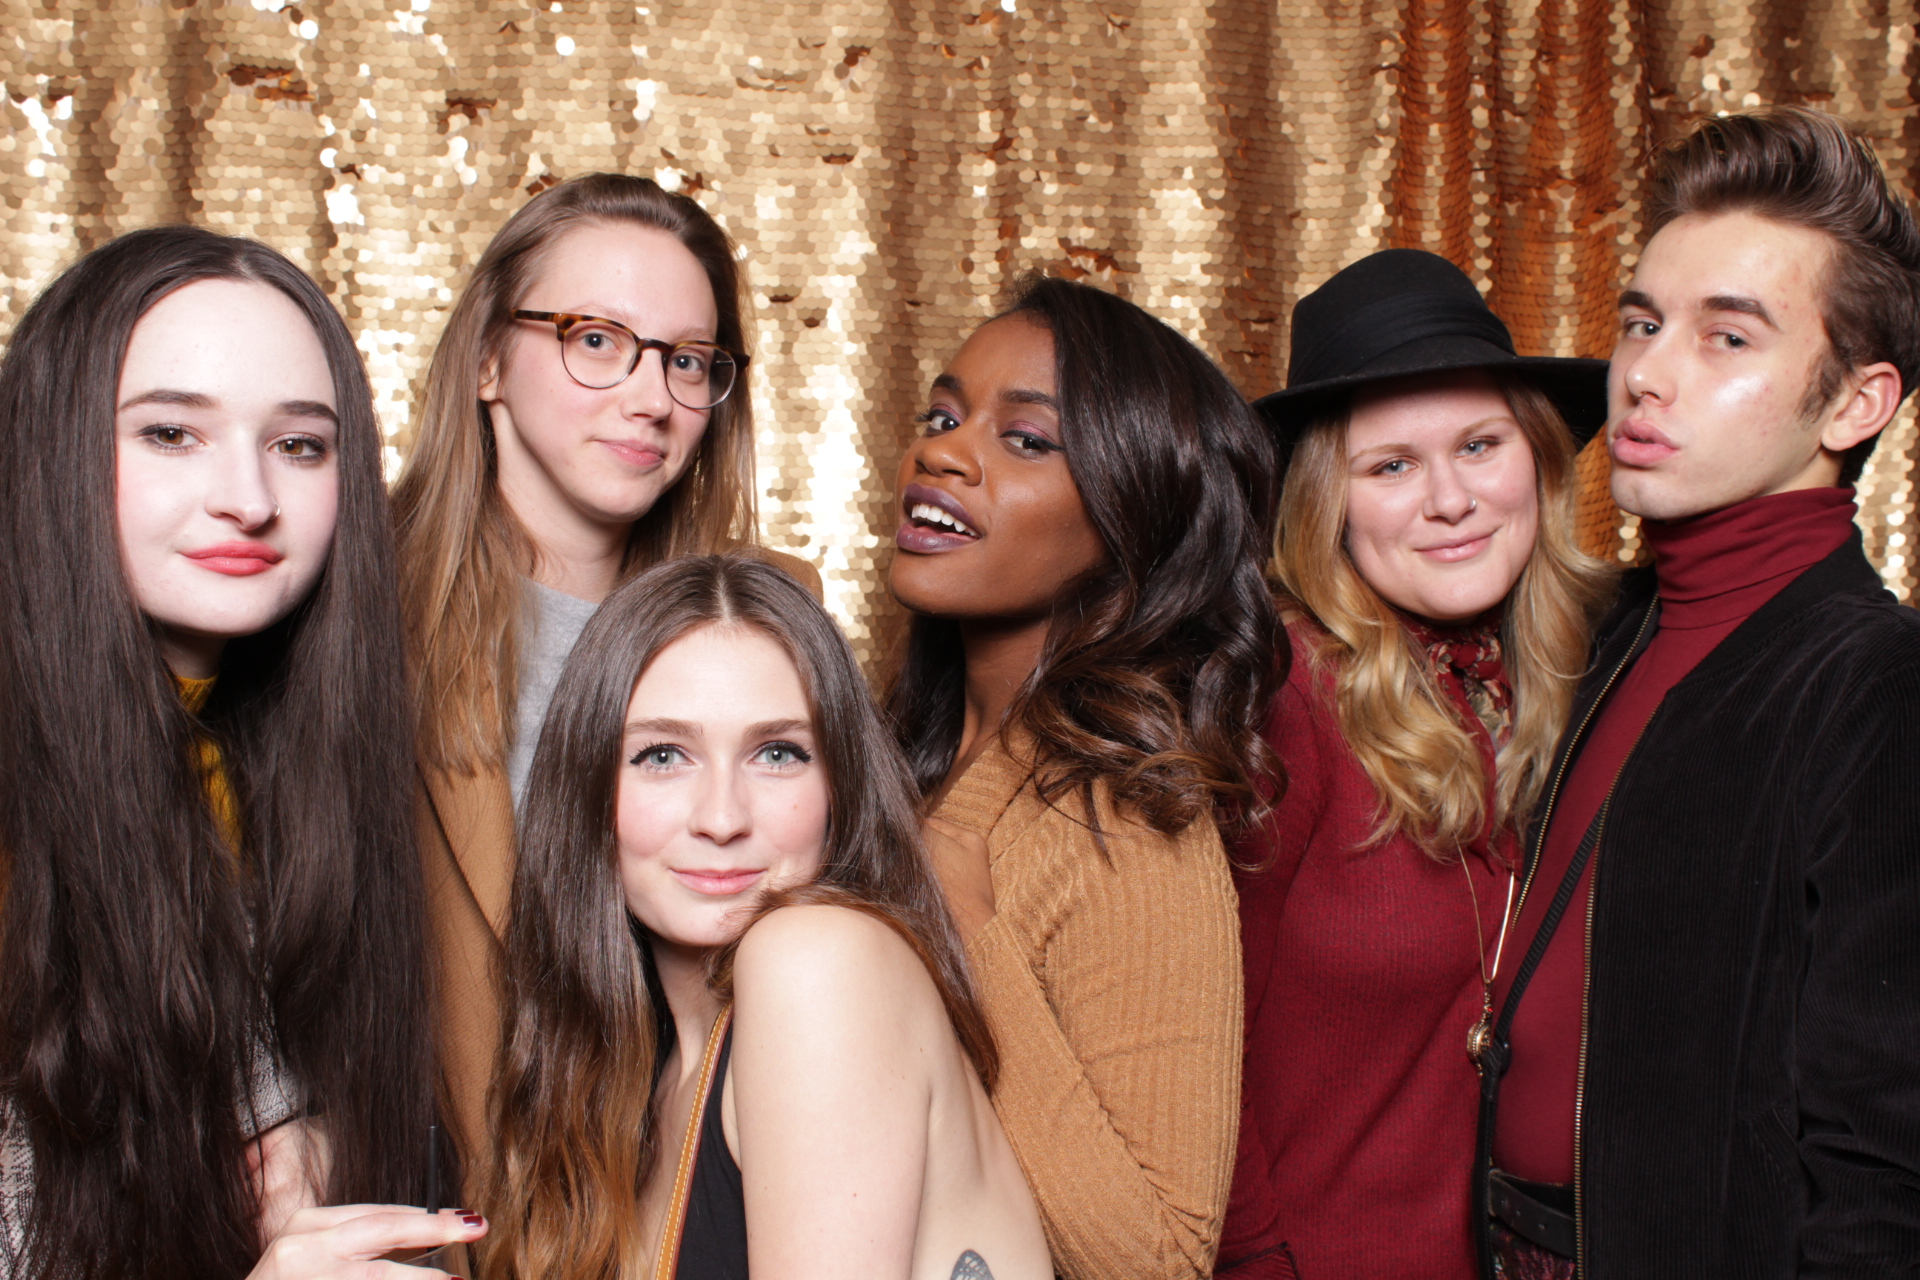 Minneapolis_Photo_Booth_rentals (11).jpg